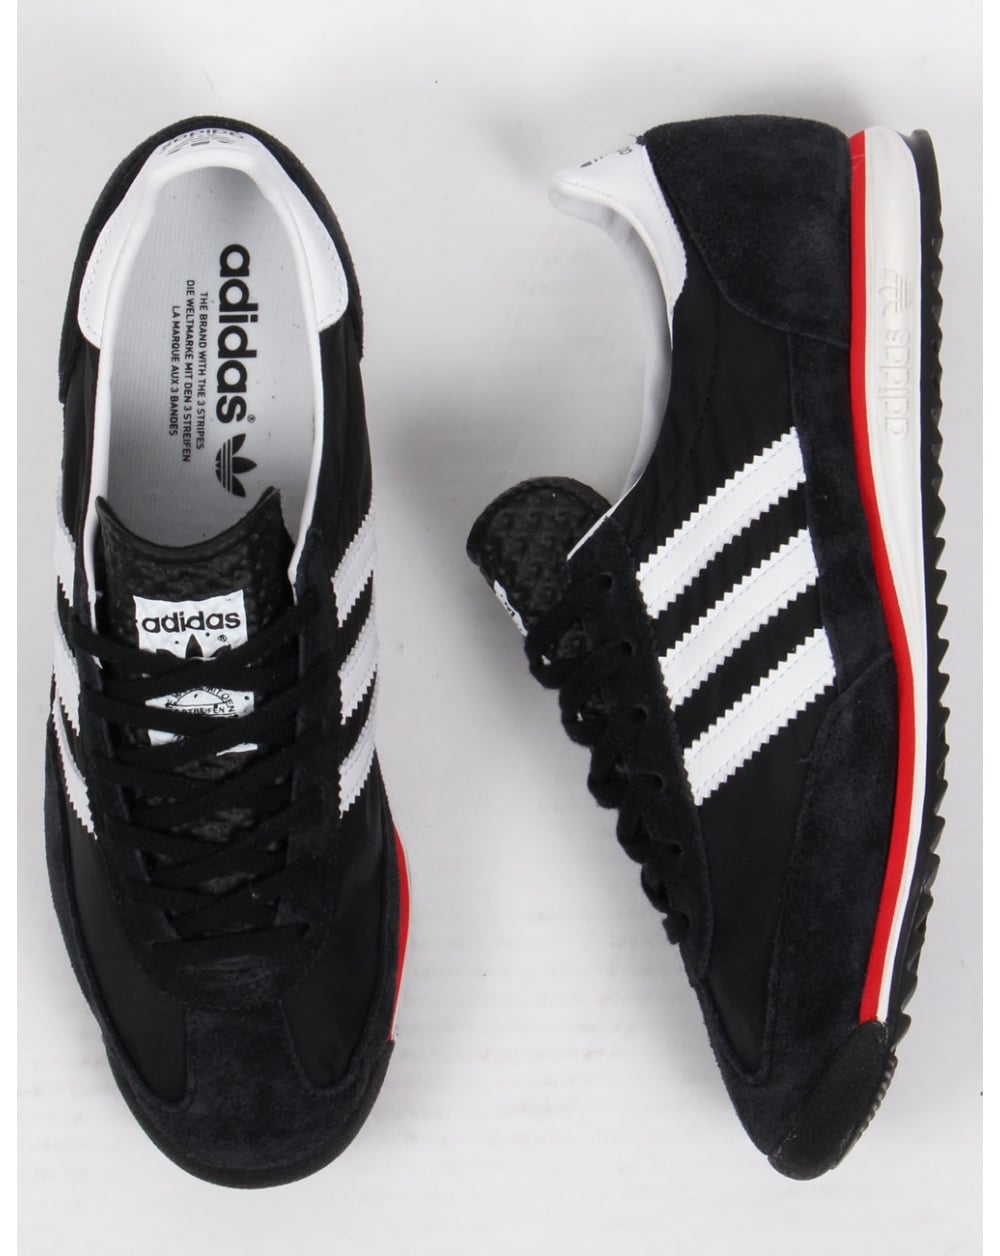 rhtjy Adidas Trainers Adidas Sl 72 Trainers Black/white/red - Adidas